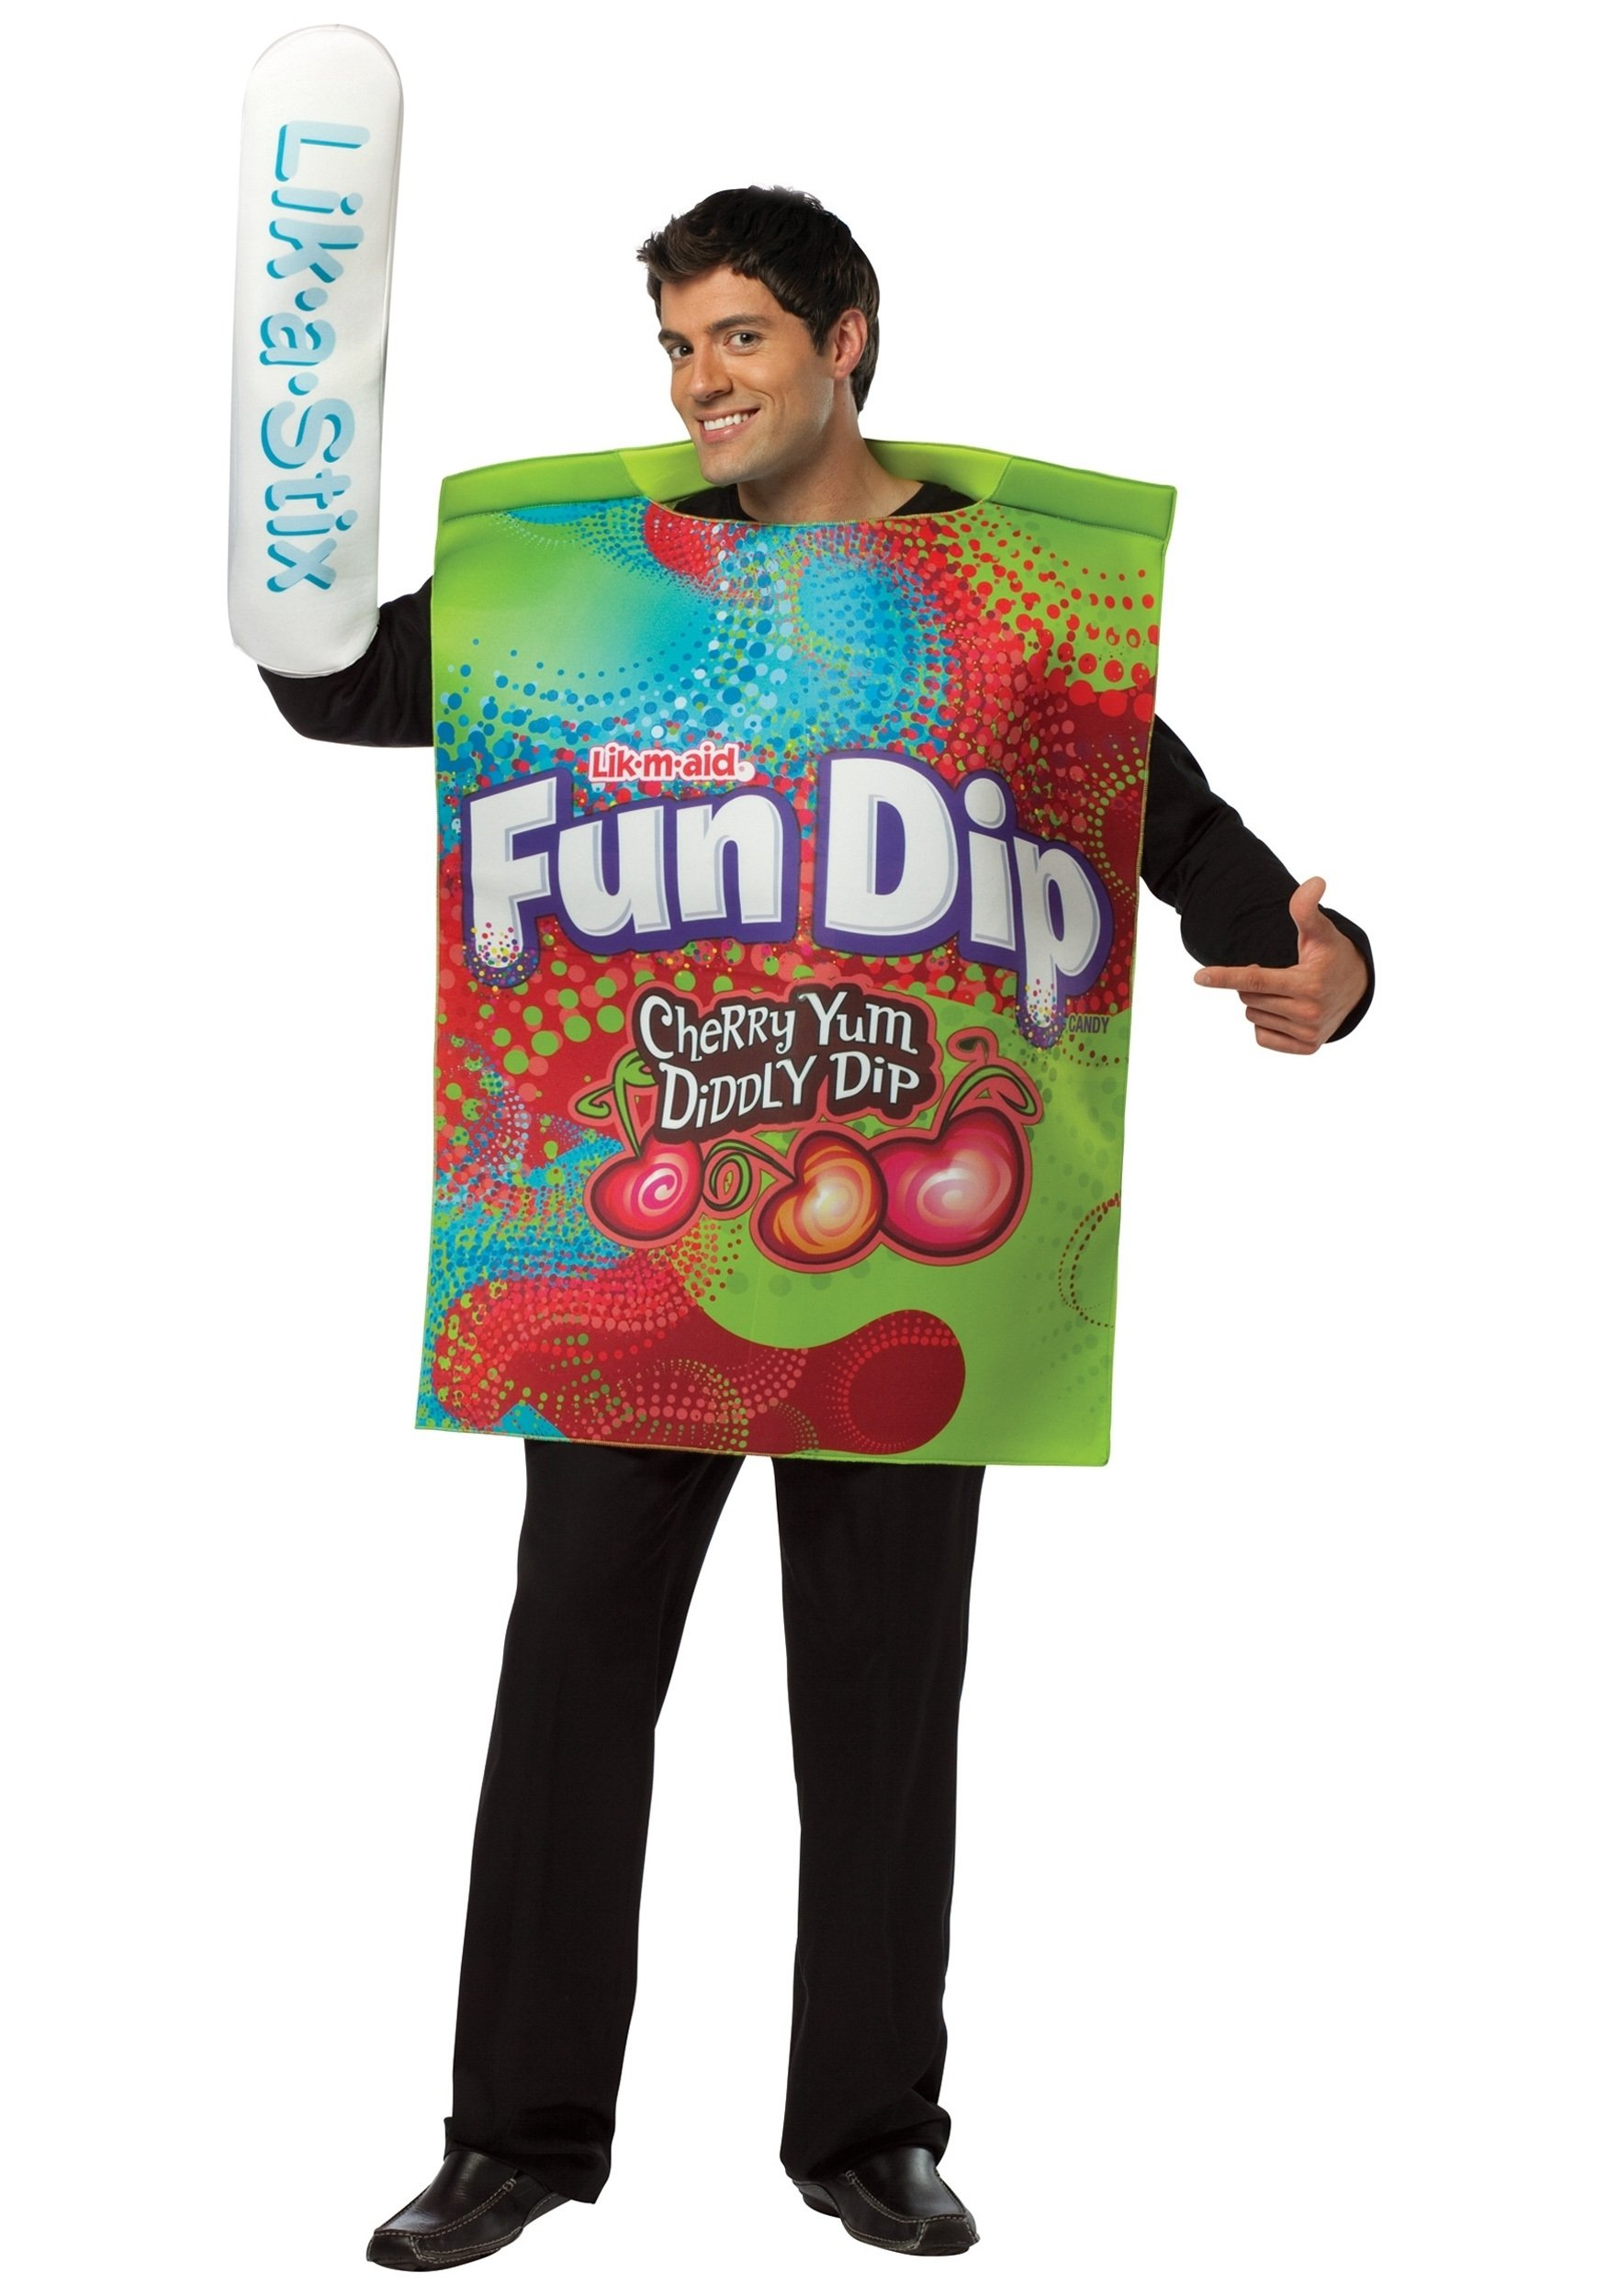 10 Most Recommended Awesome Costume Ideas For Men 61 funny costume ideas for adults costume ideas adult hot milf cock 2021